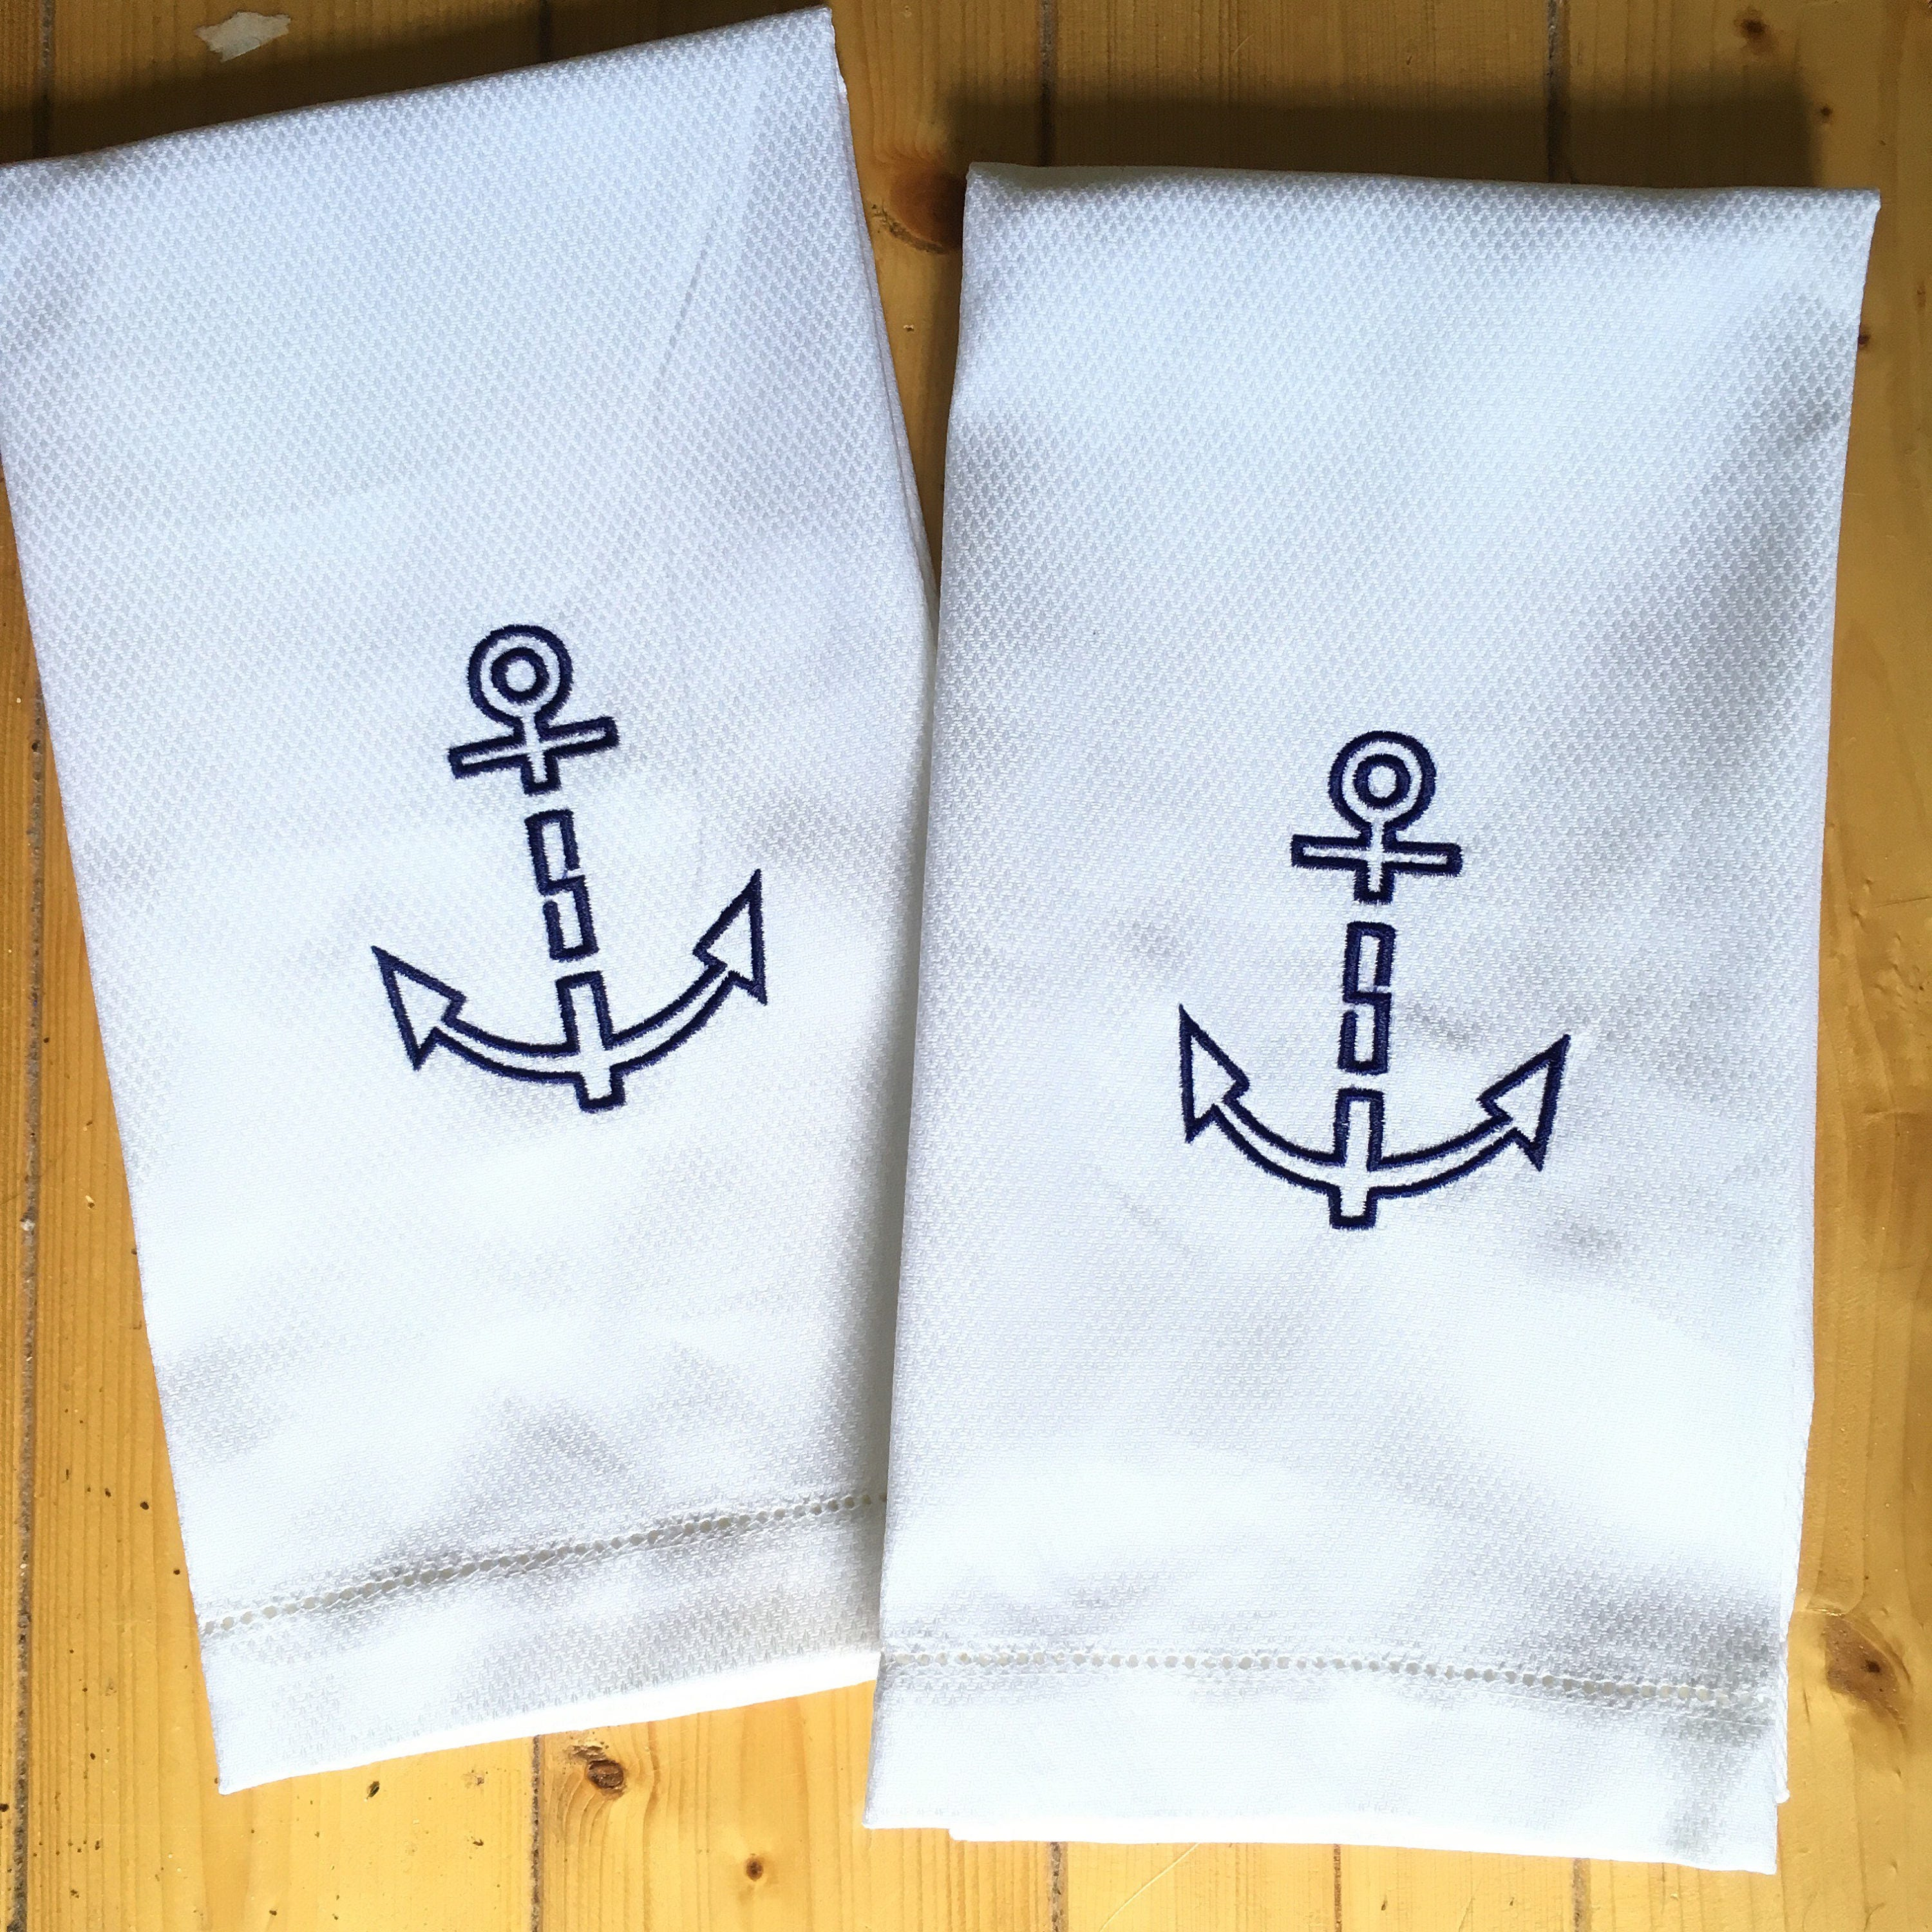 Embroidered Towels For Wedding Gift: Monogram Hand Towel With Embroidered Anchor / Wedding Gift